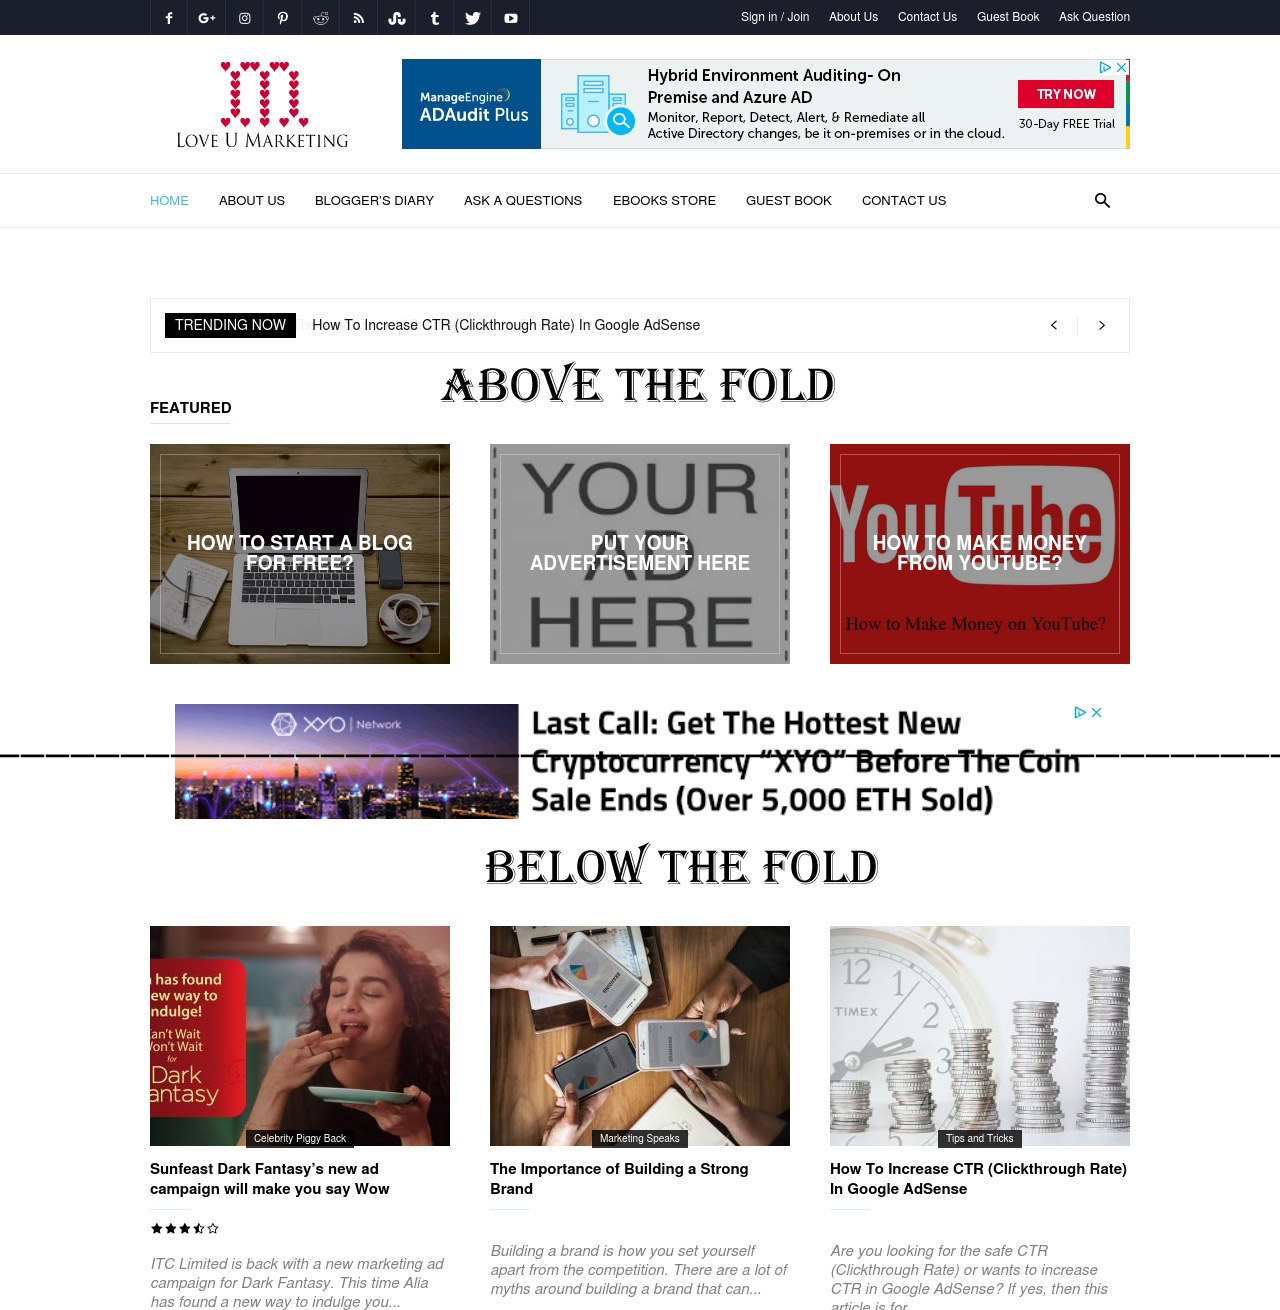 Above the Fold Google AdSense Placement